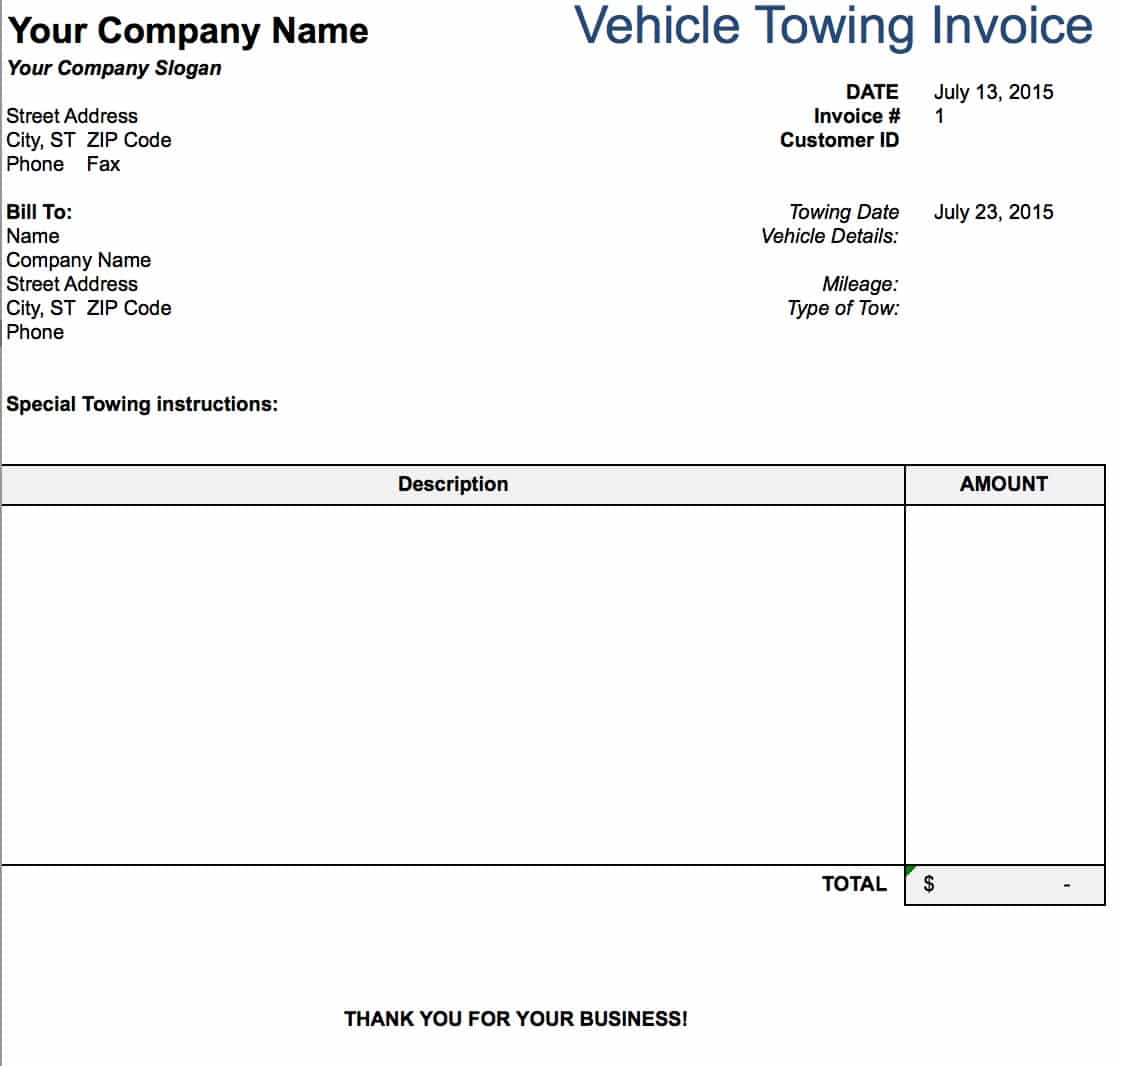 Free Tow Service Invoice Template Excel PDF Word Doc - Sample invoice template free for service business